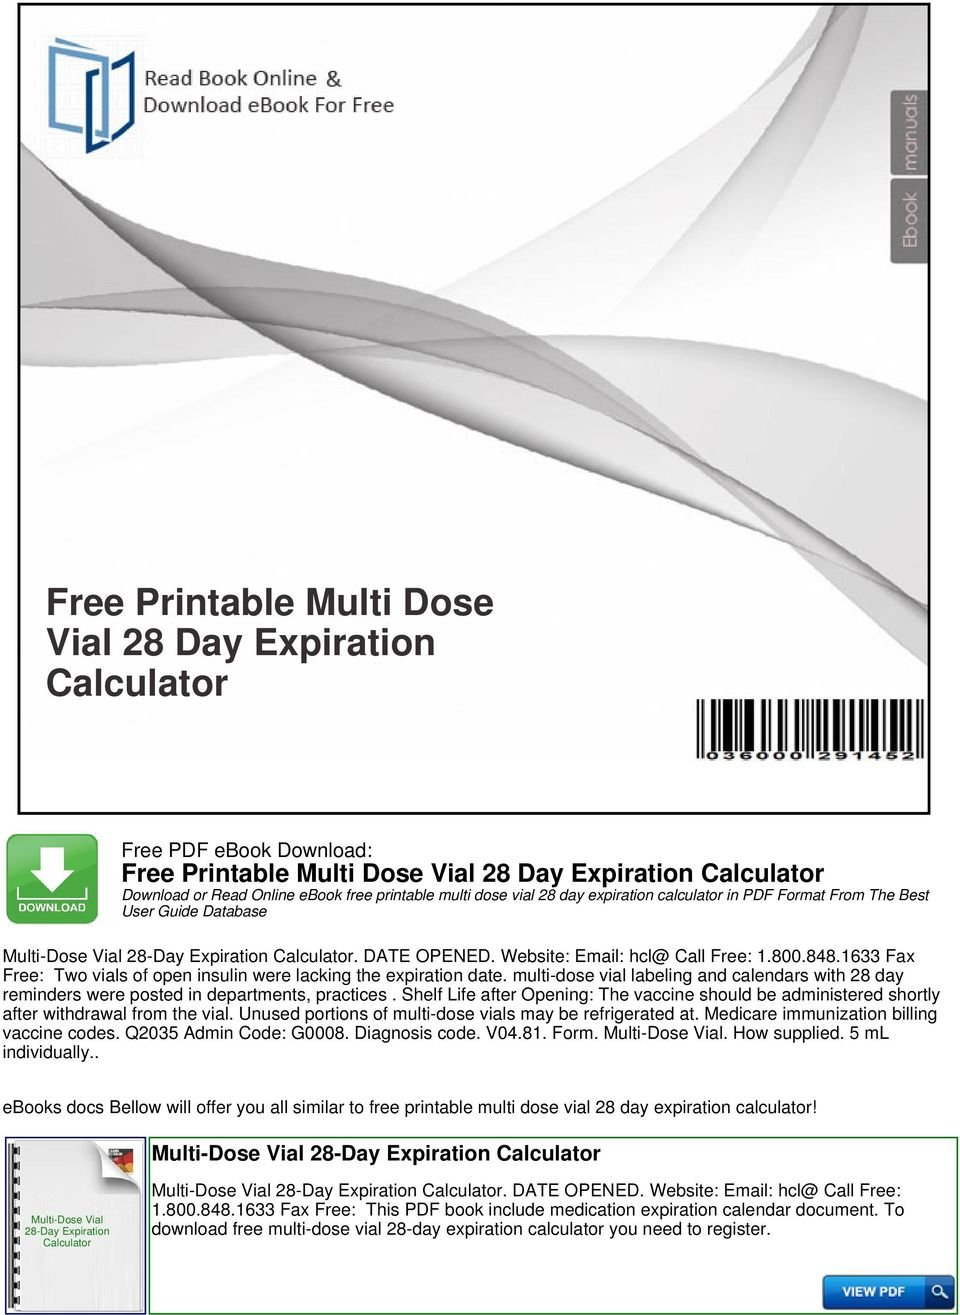 Free Printable Multi Dose Vial 28 Day Expiration Calculator Multi-Dose Vial 28-Day Expiration Calculator